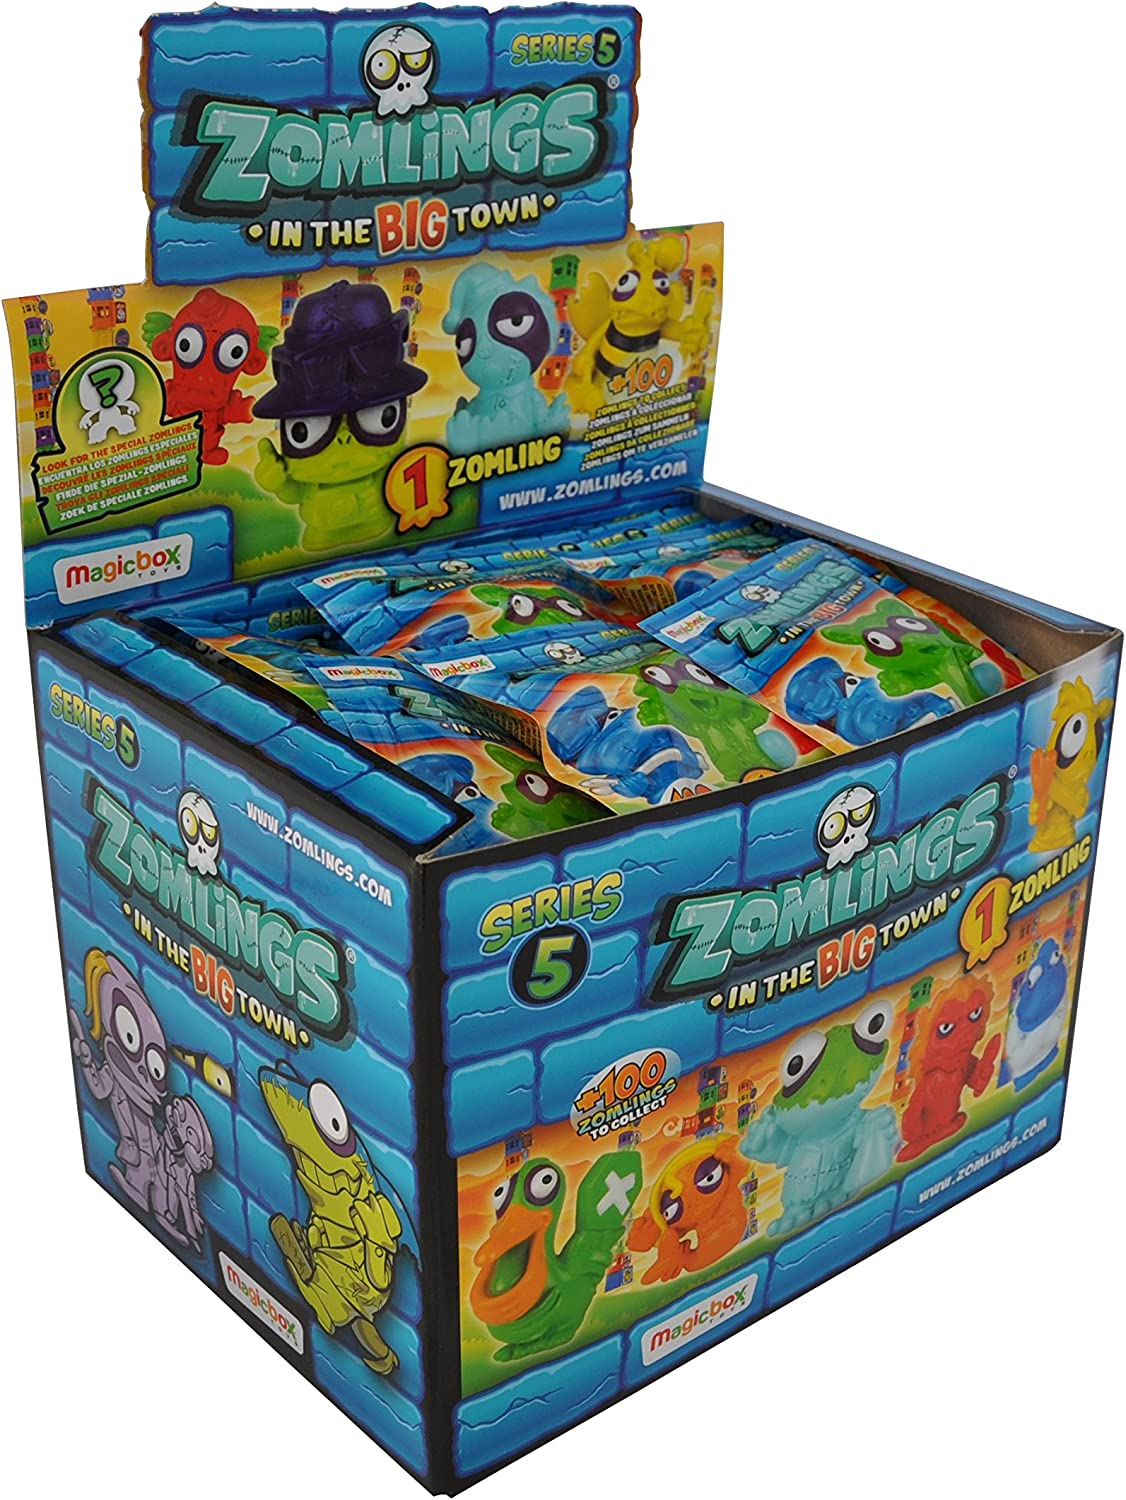 Magicbox - Zomlings in the BIG town, Serie 5 (Caja de 50 sobres ...